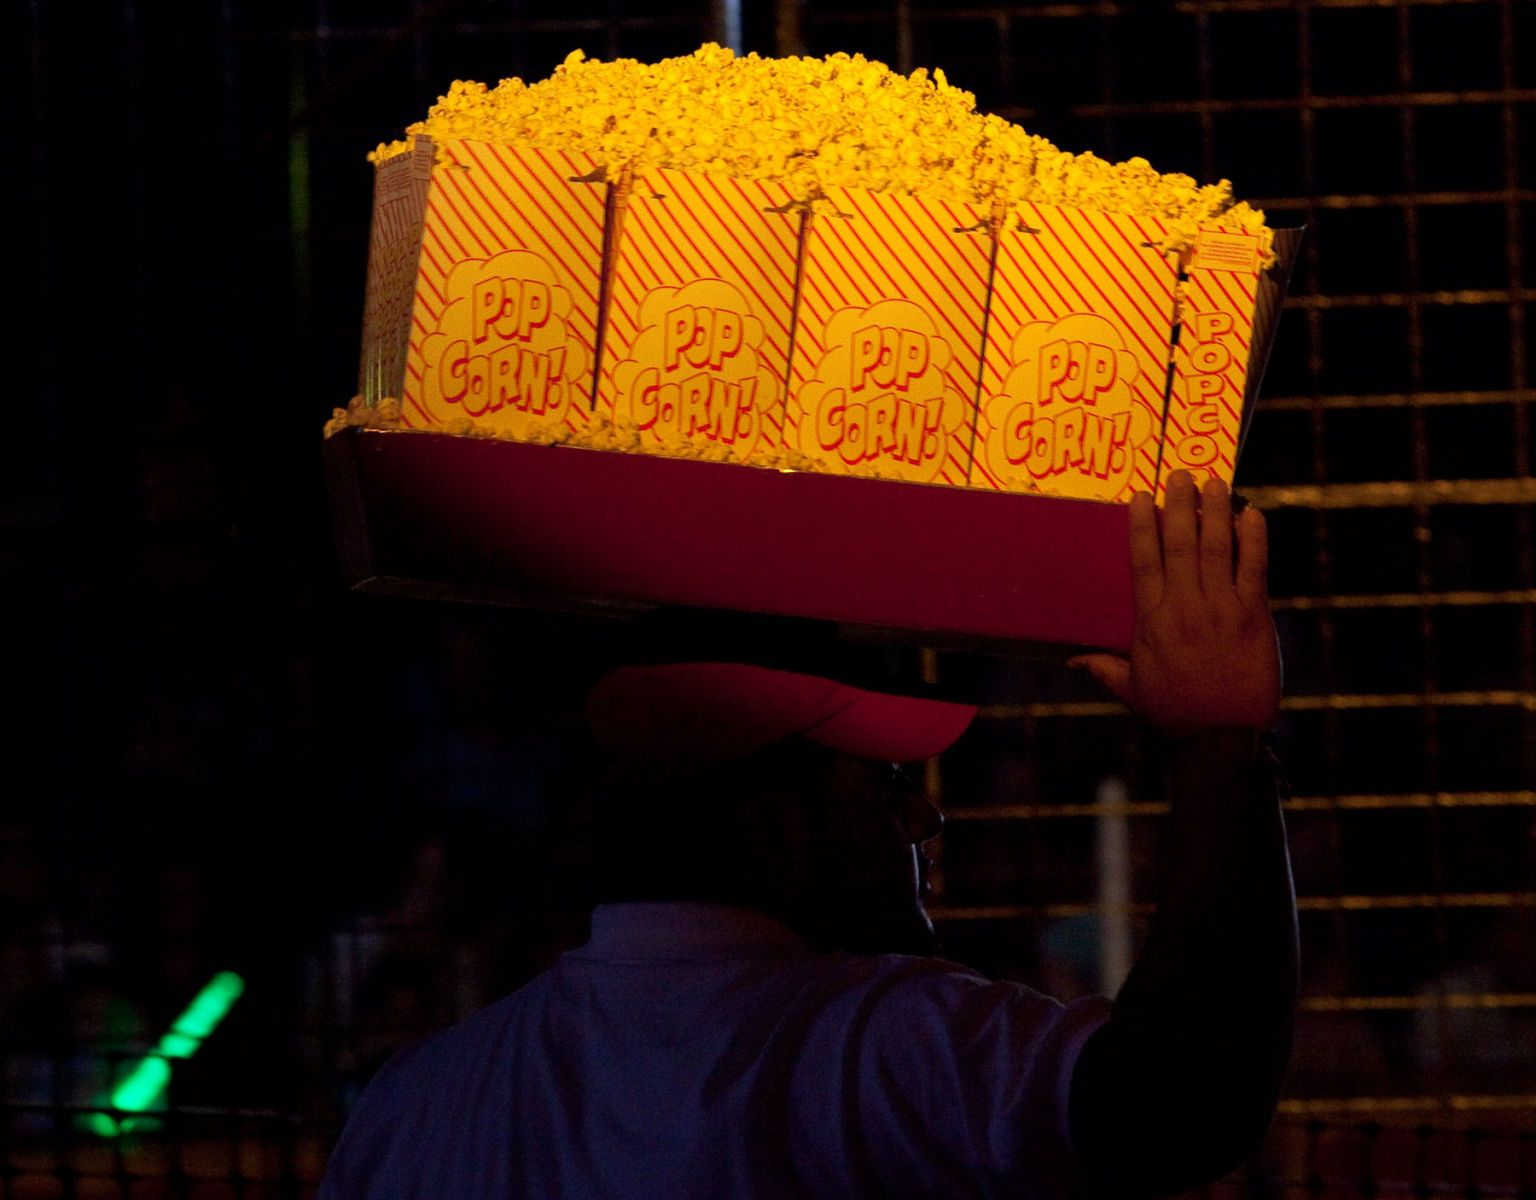 A vendor sells popcorn to the patrons of the Cole Brothers Circus of the Stars in Myrtle Beach, South Carolina March 31, 2013. Traveling circuses such as the Cole Brothers Circus of the Stars, complete with it's traveling big top tent, set up their tent city in smaller markets all along the East Coast of the United States as they aim to bring the circus to rural areas. The Cole Brothers Circus, now in its 129th edition, travels to 100 cities in 20-25 states and stages 250 shows a year.   REUTERS/Randall Hill   (UNITED STATES)